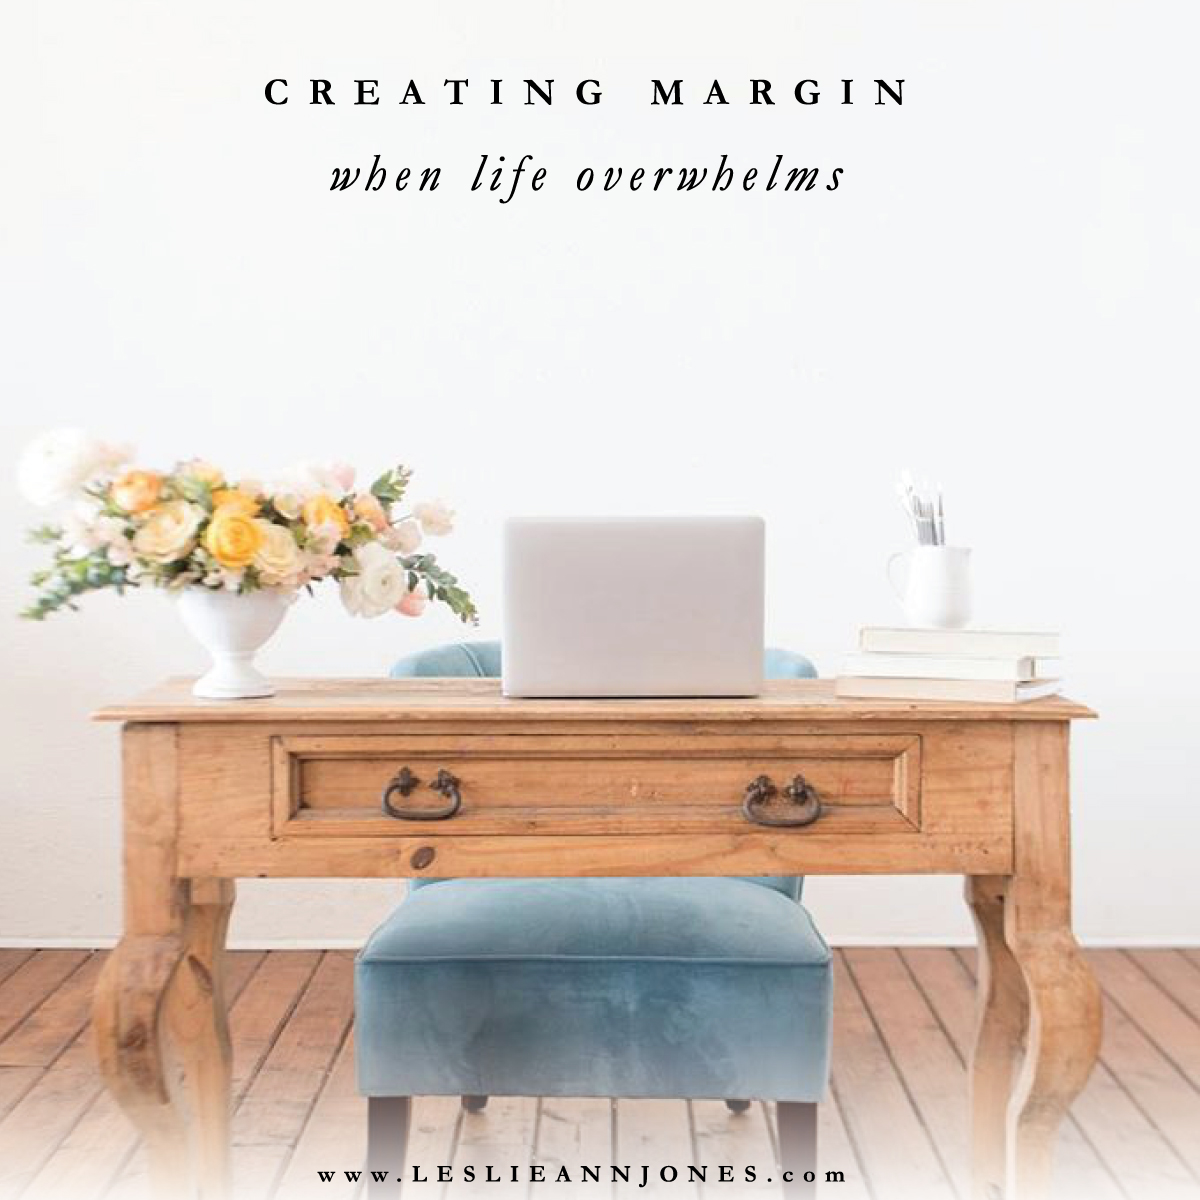 Creating Margin When Life Overwhelms // by Leslie Ann Jones